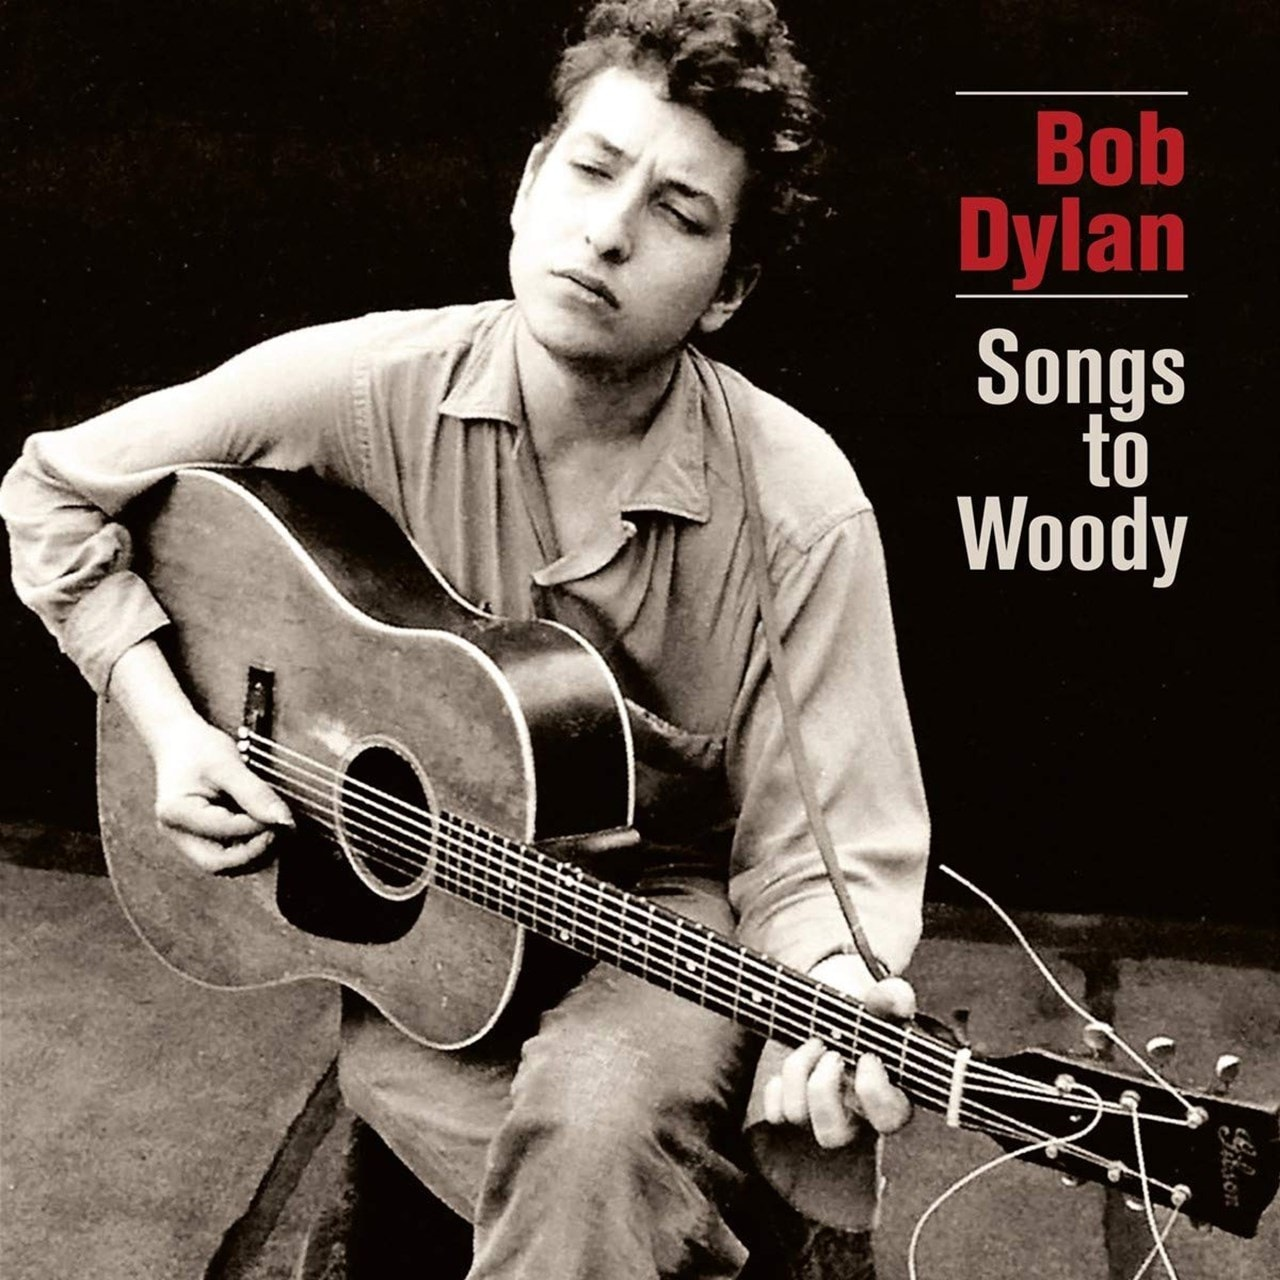 Songs to Woody - 1